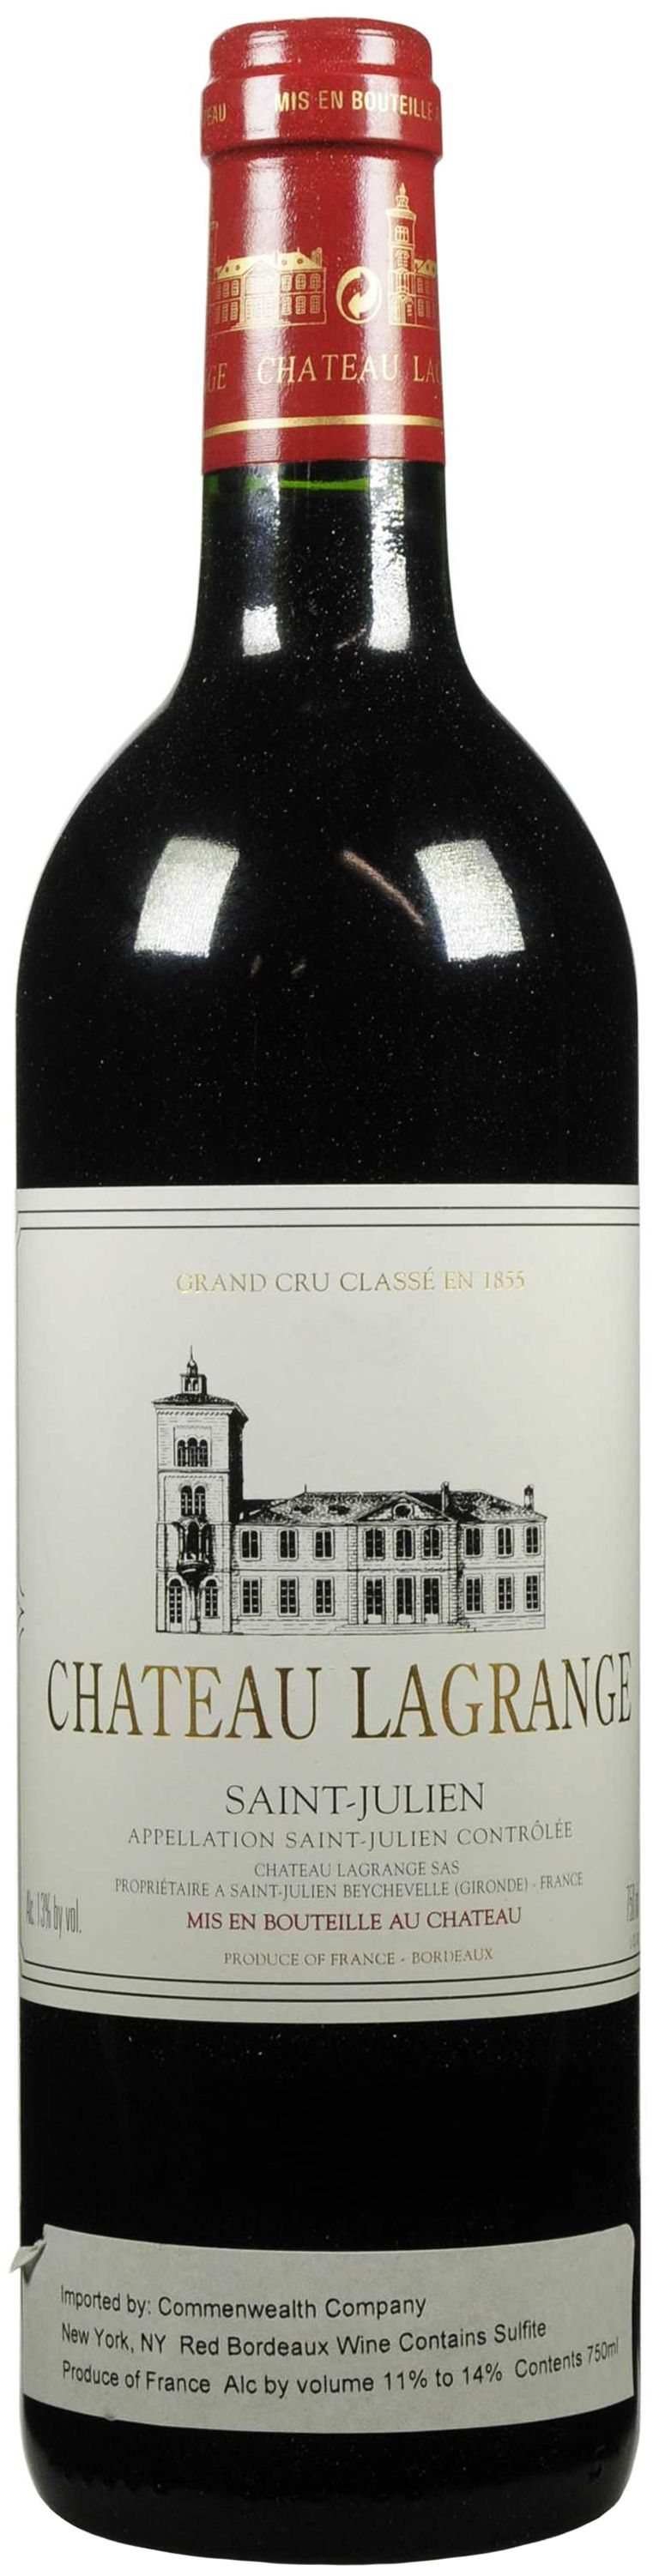 Chateau Lagrange, Grand Cru Classe, 1996